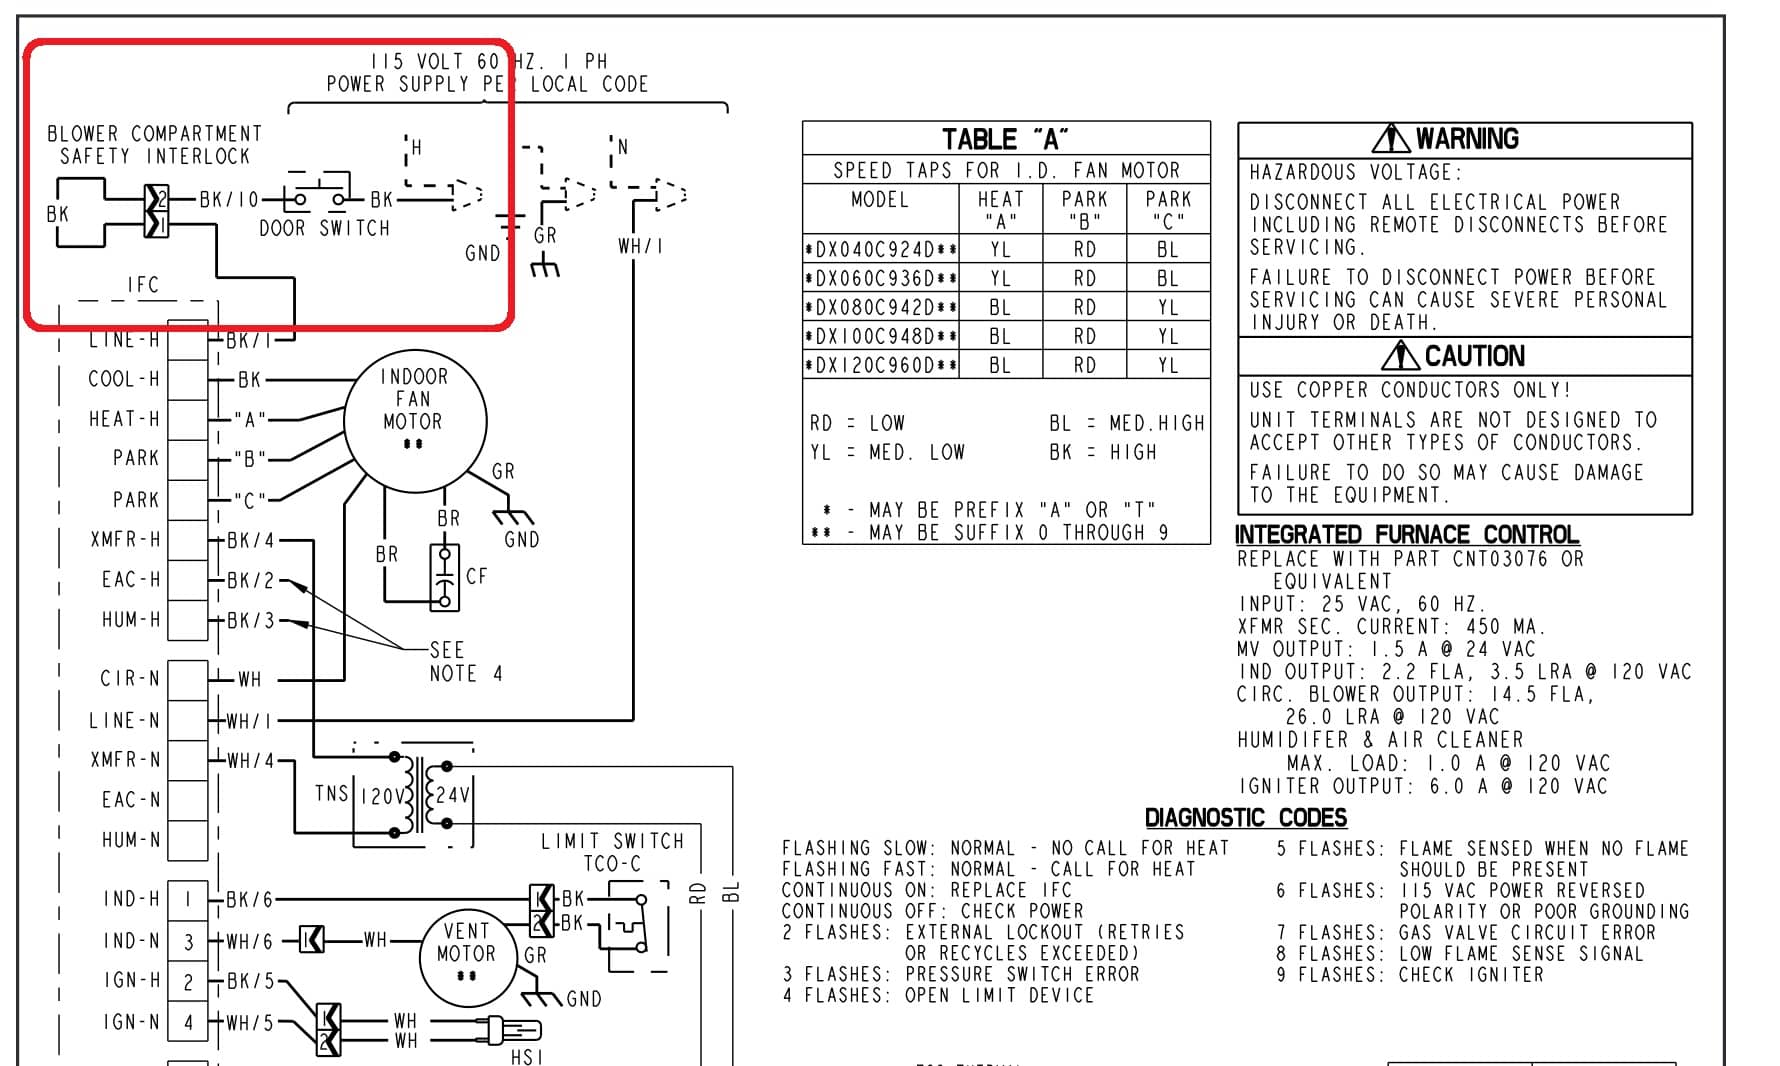 Wiring Diagram Trane Gas Furnace from inspectapedia.com